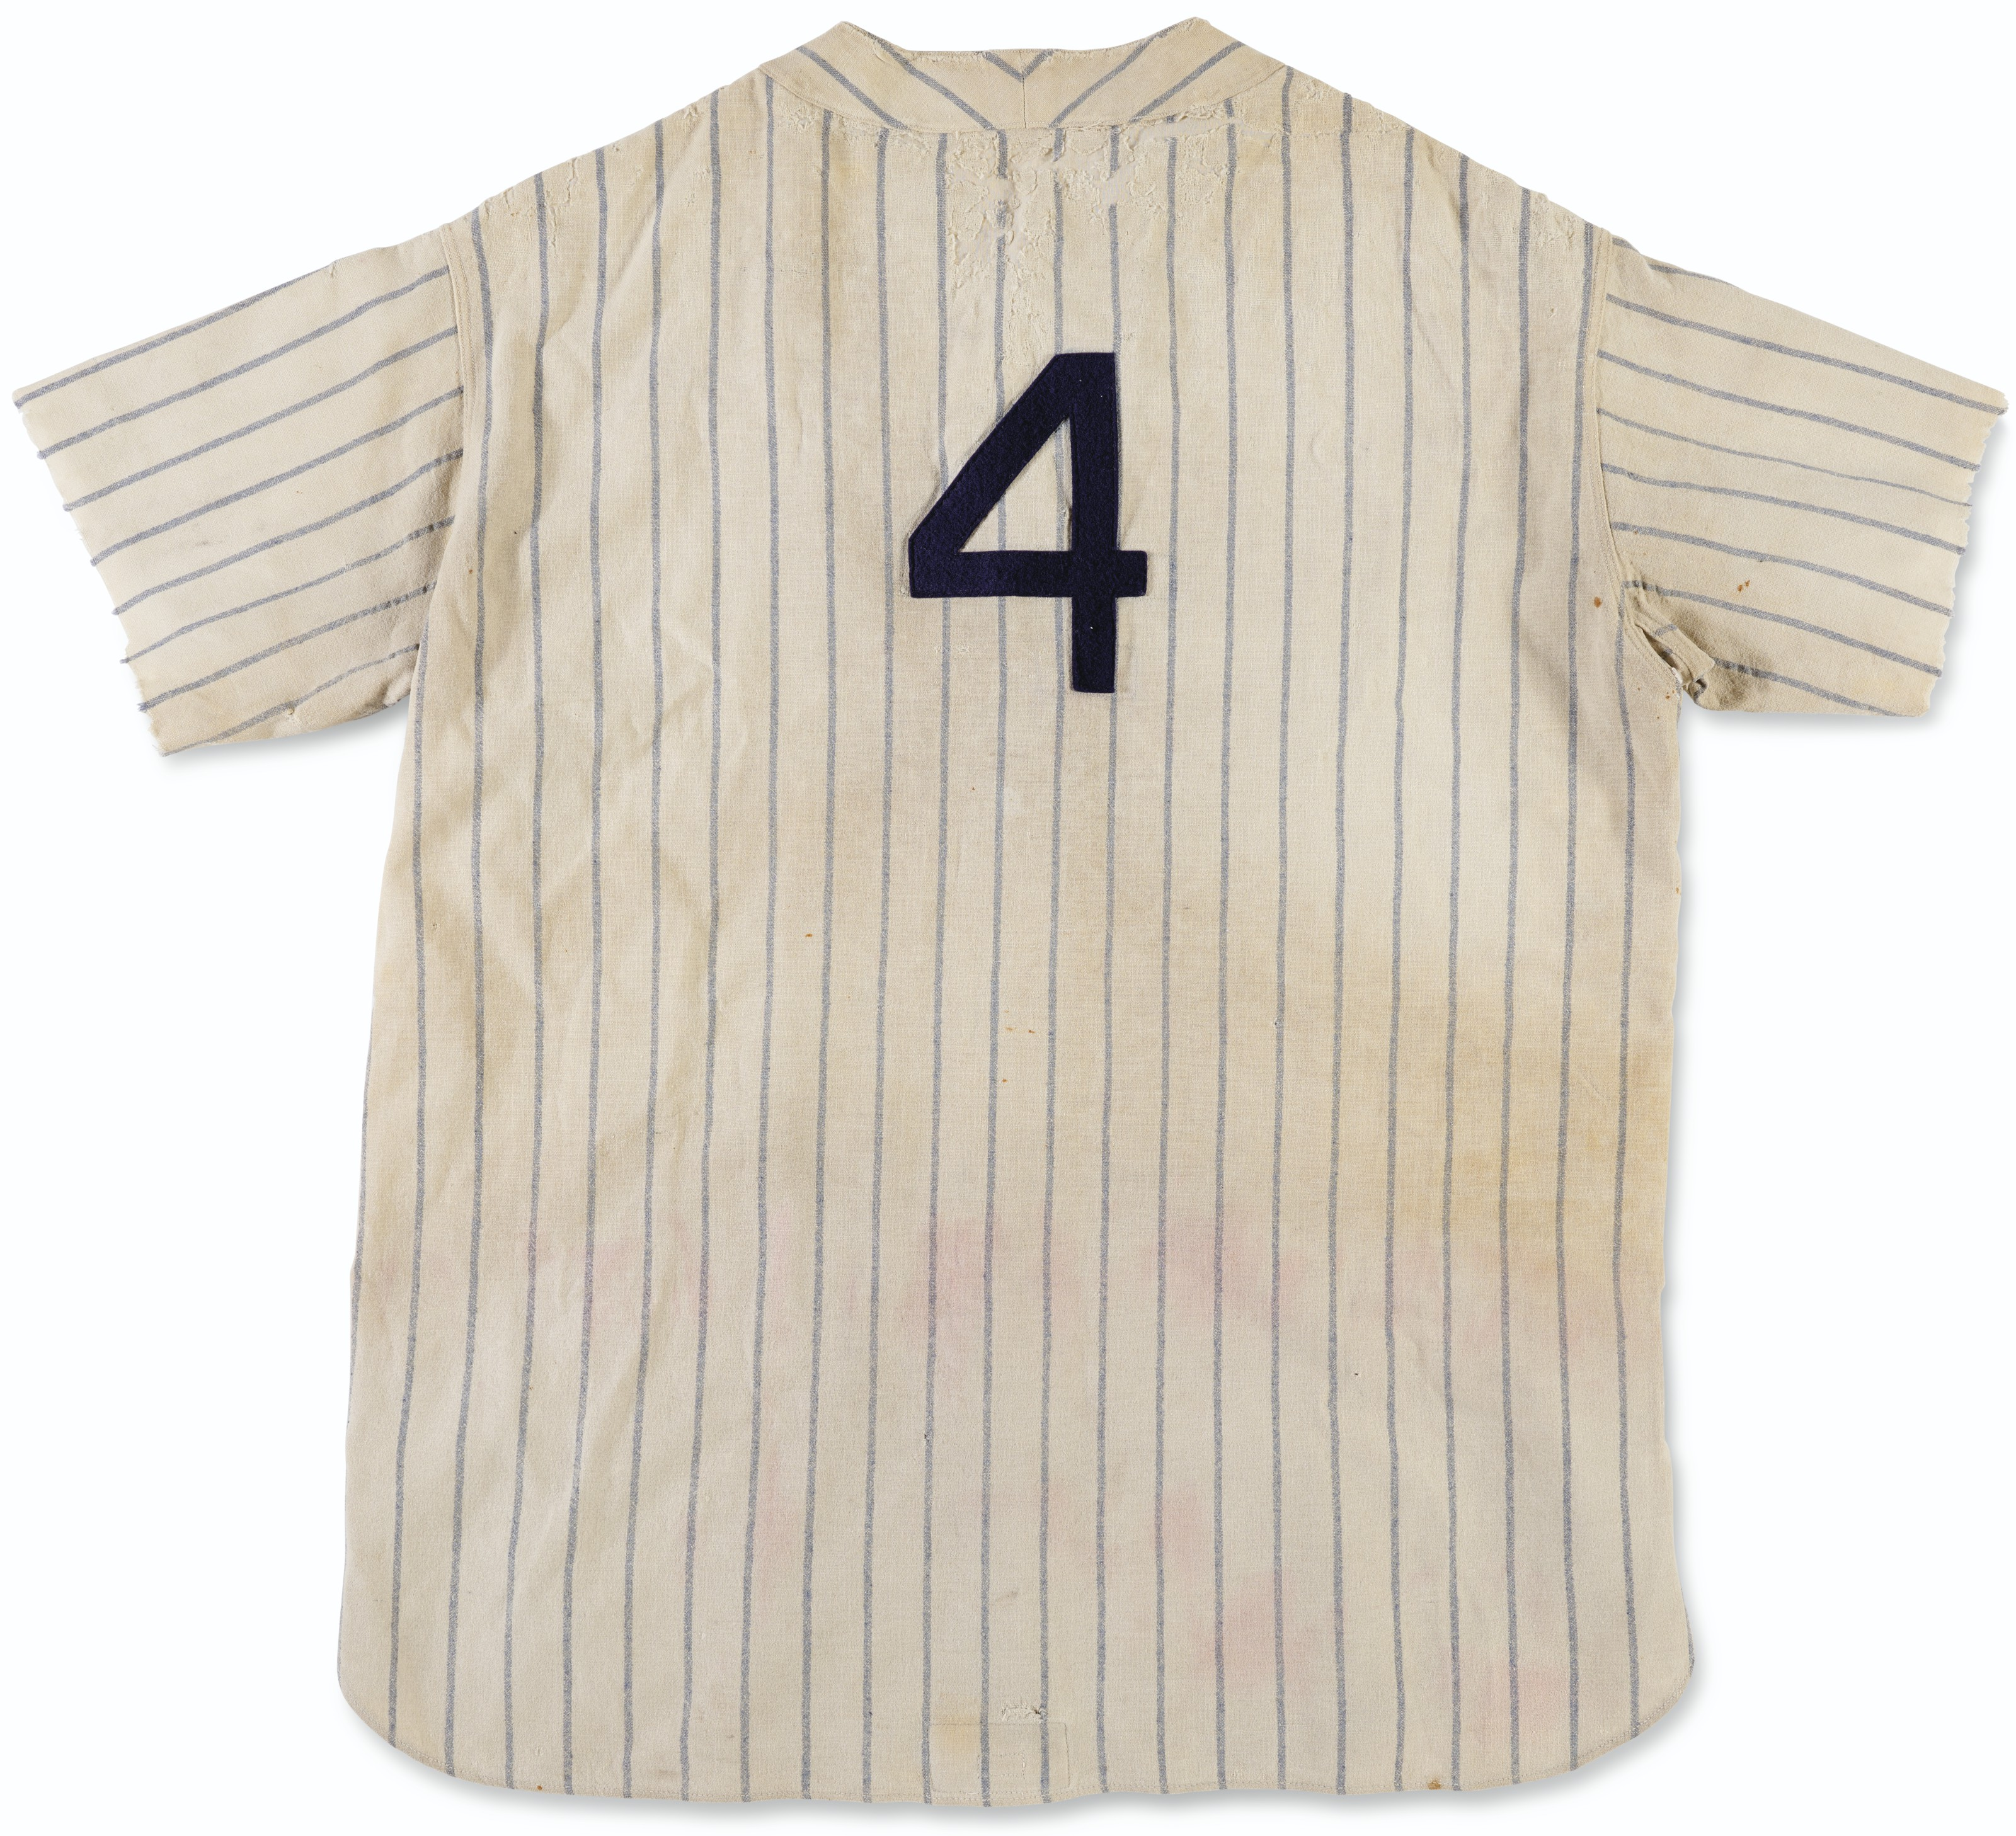 Important 1931 Lou Gehrig New York Yankees Professional Model Home Jersey